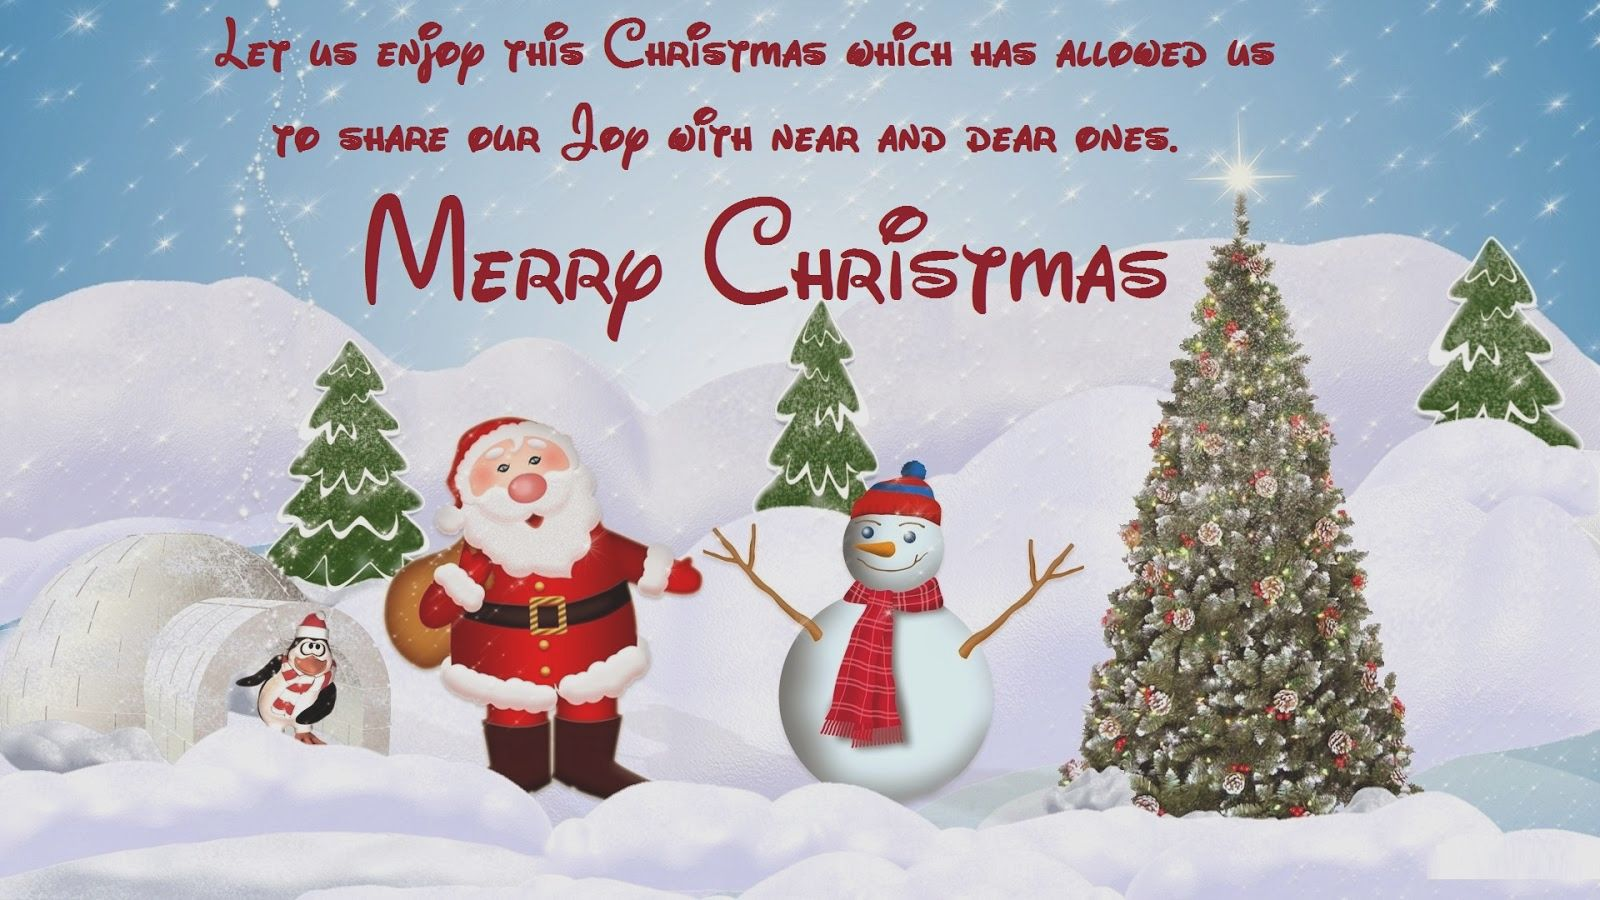 Merry christmas greetings messages images and wishes quotes snow is also whitea december is with full of white snow and a special occasion that represent peace and santa merry christmas and have m4hsunfo